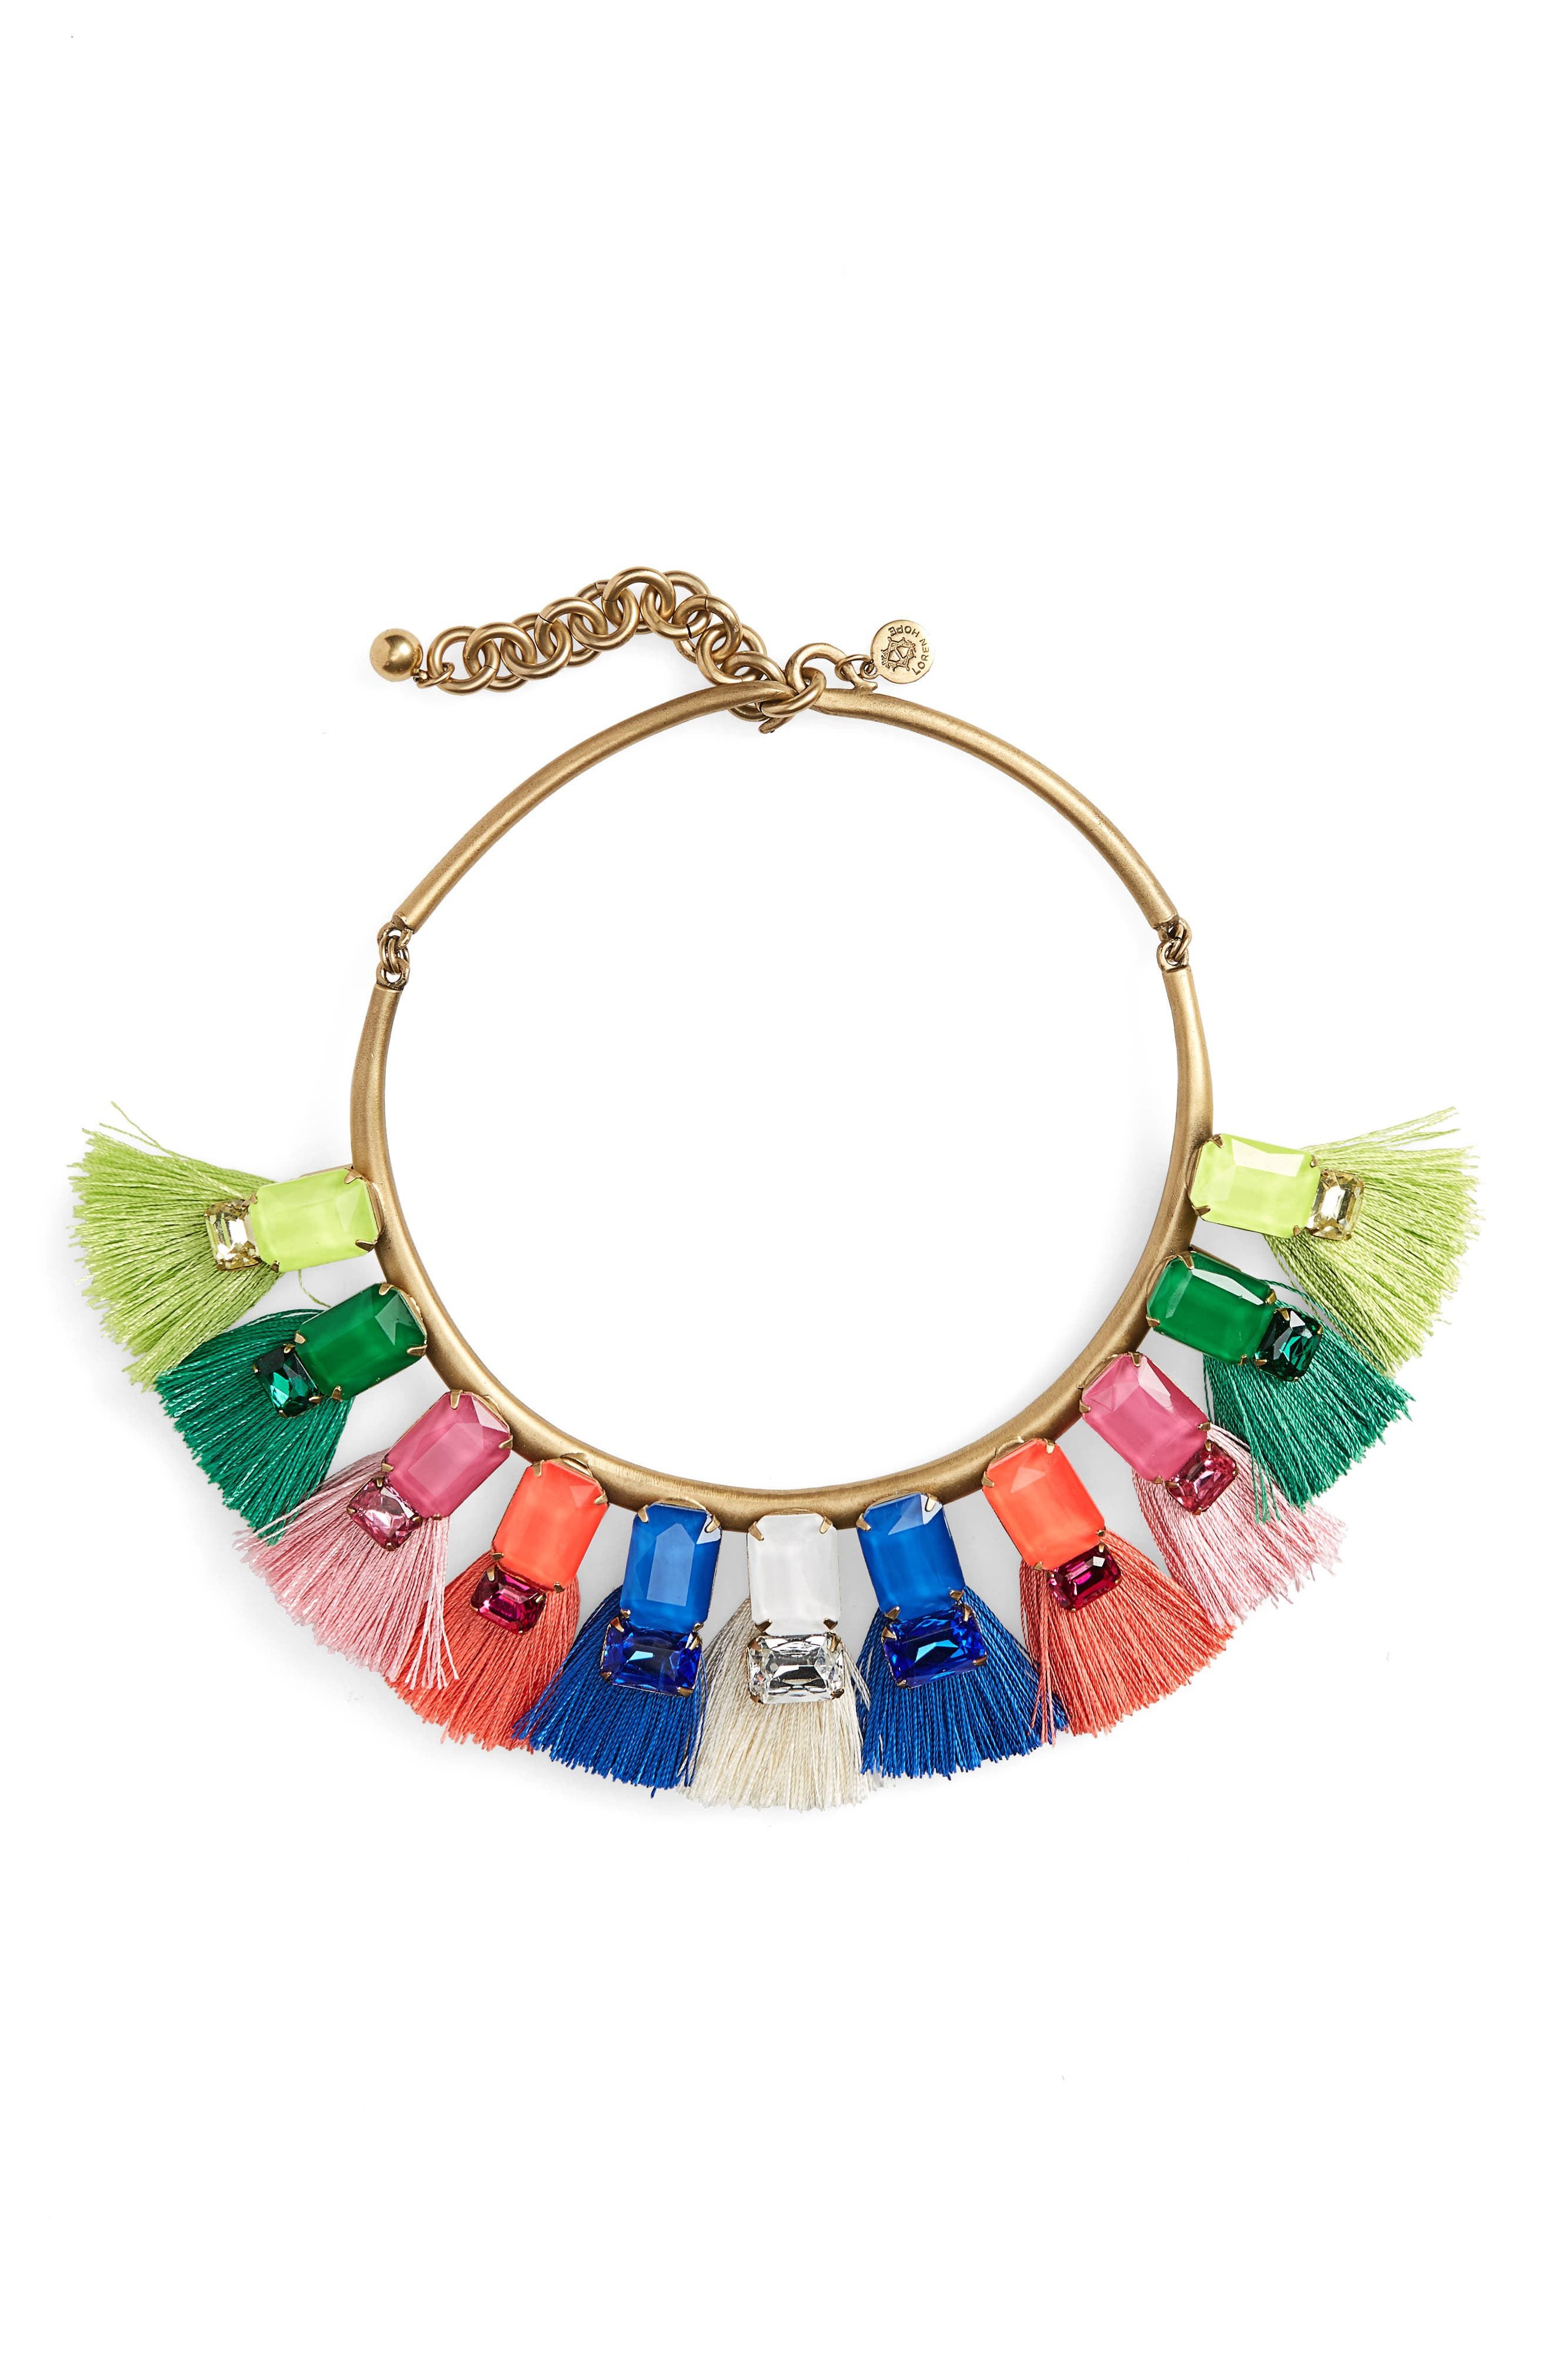 Loren Hope Scarlet Tassel Collar Necklace